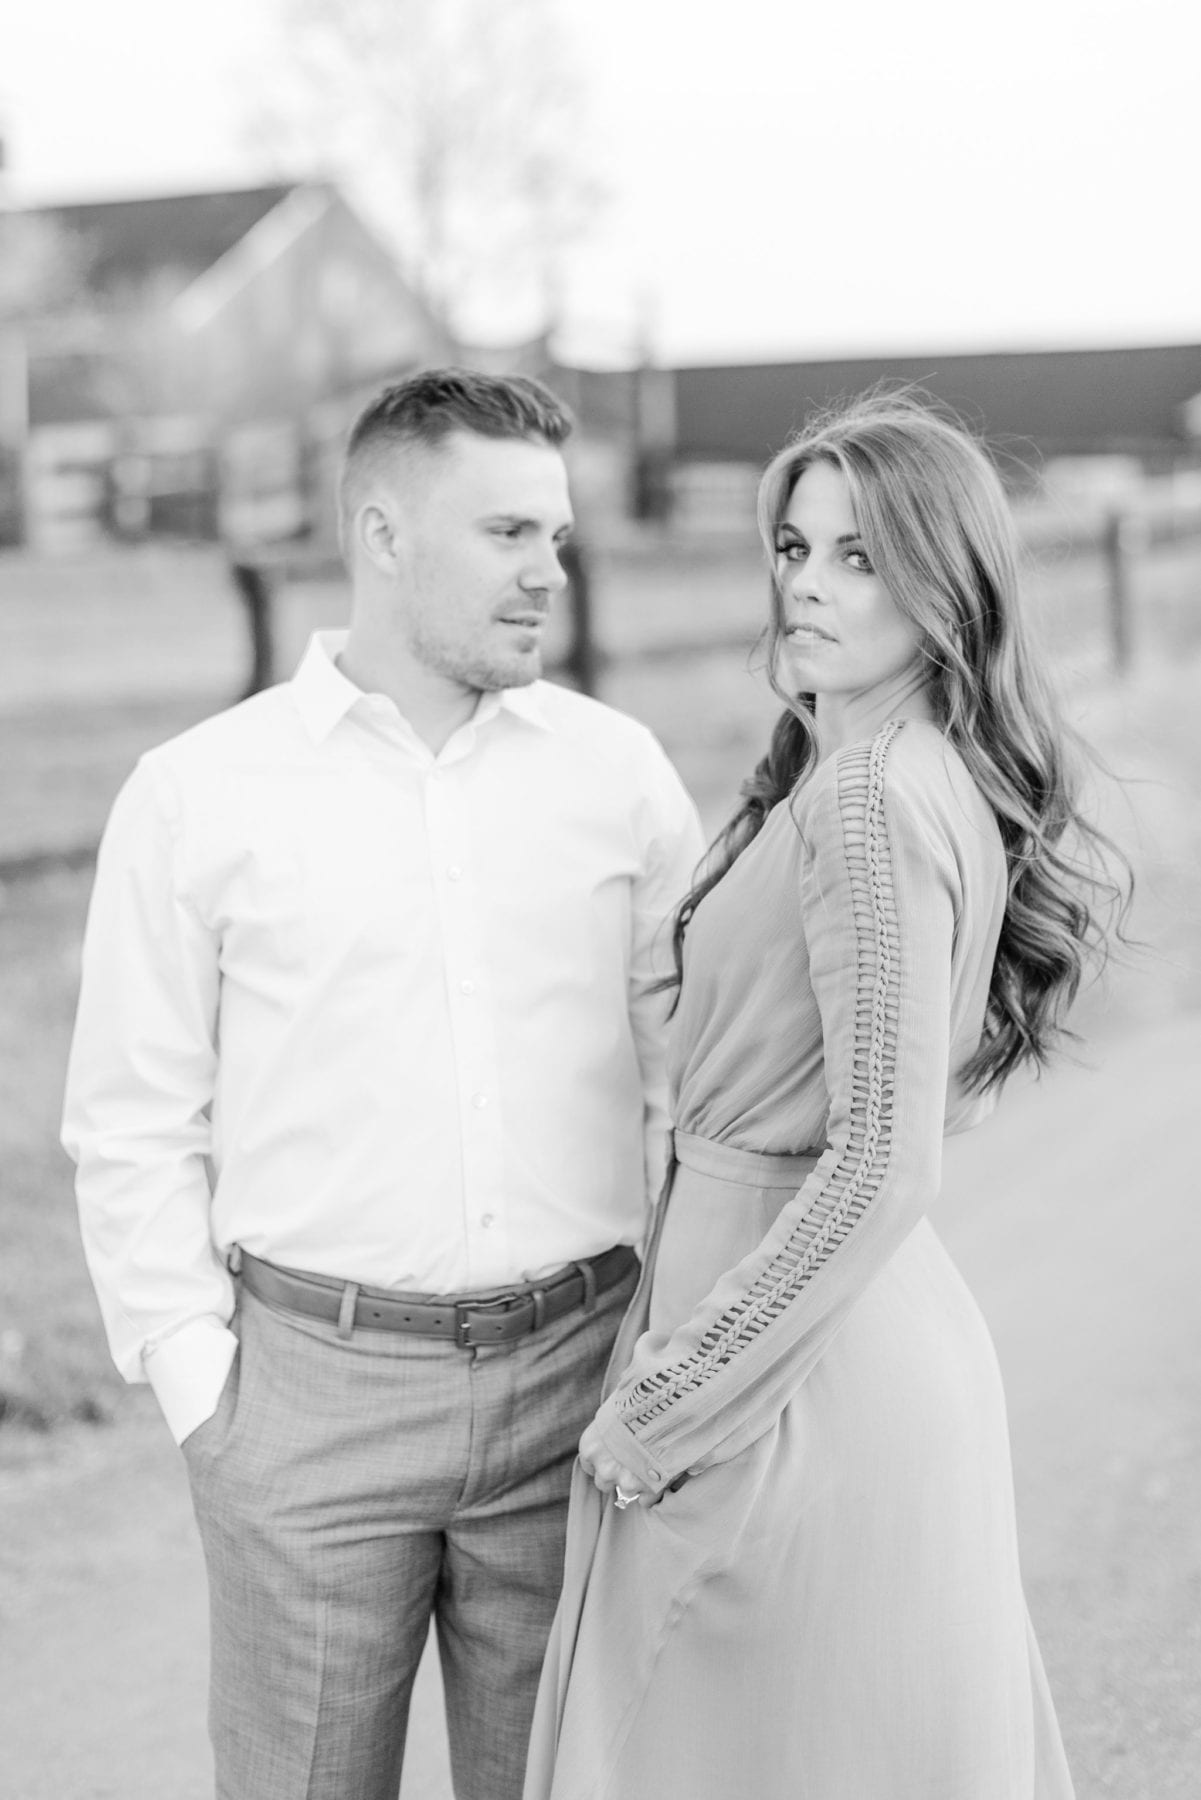 Goodstone Inn Engagement Session Virginia Wedding Photographer Megan Kelsey Photography-292.jpg